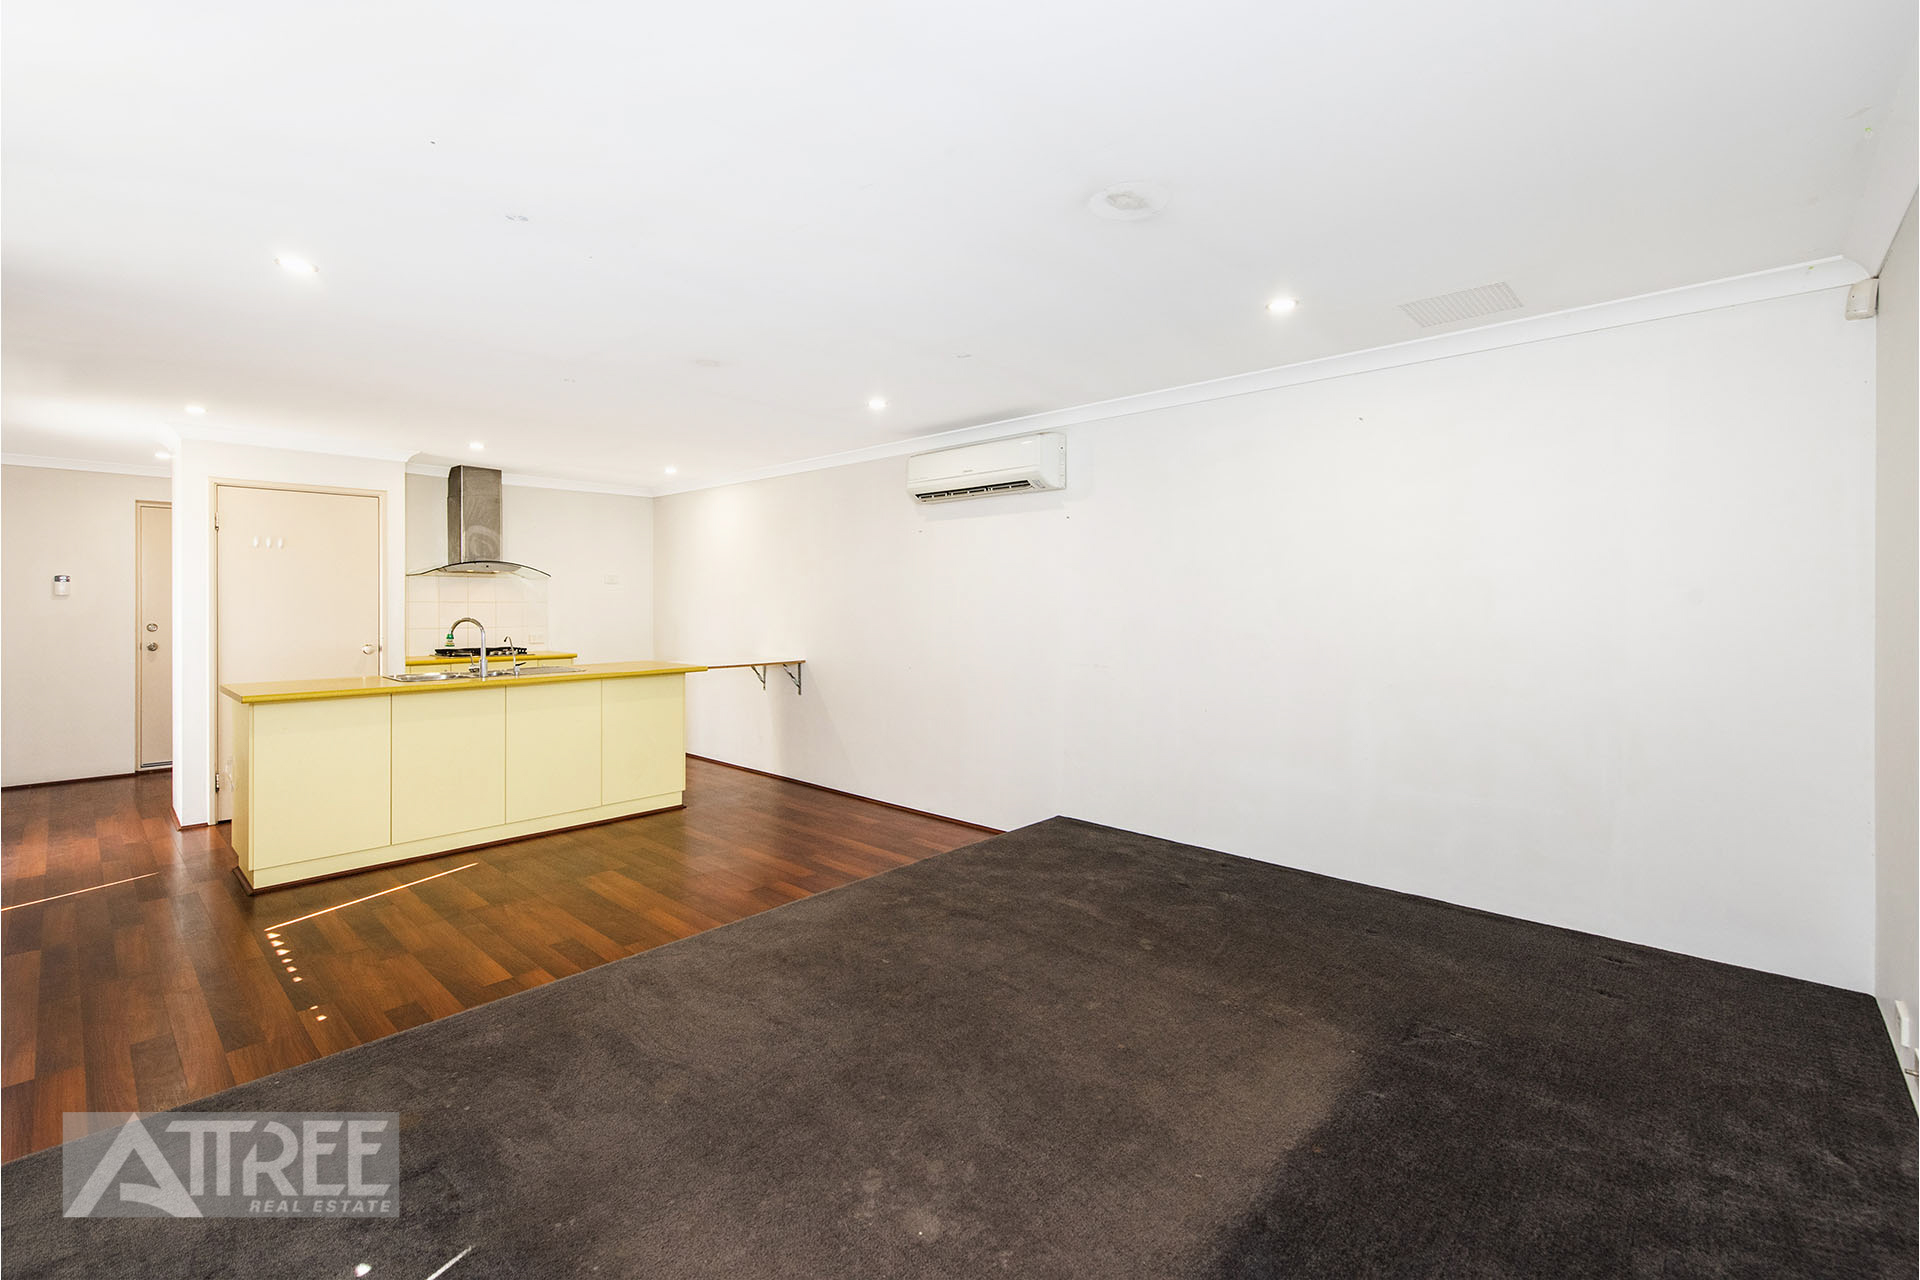 Property for sale in CANNING VALE, 14 Belgravia Place : Attree Real Estate